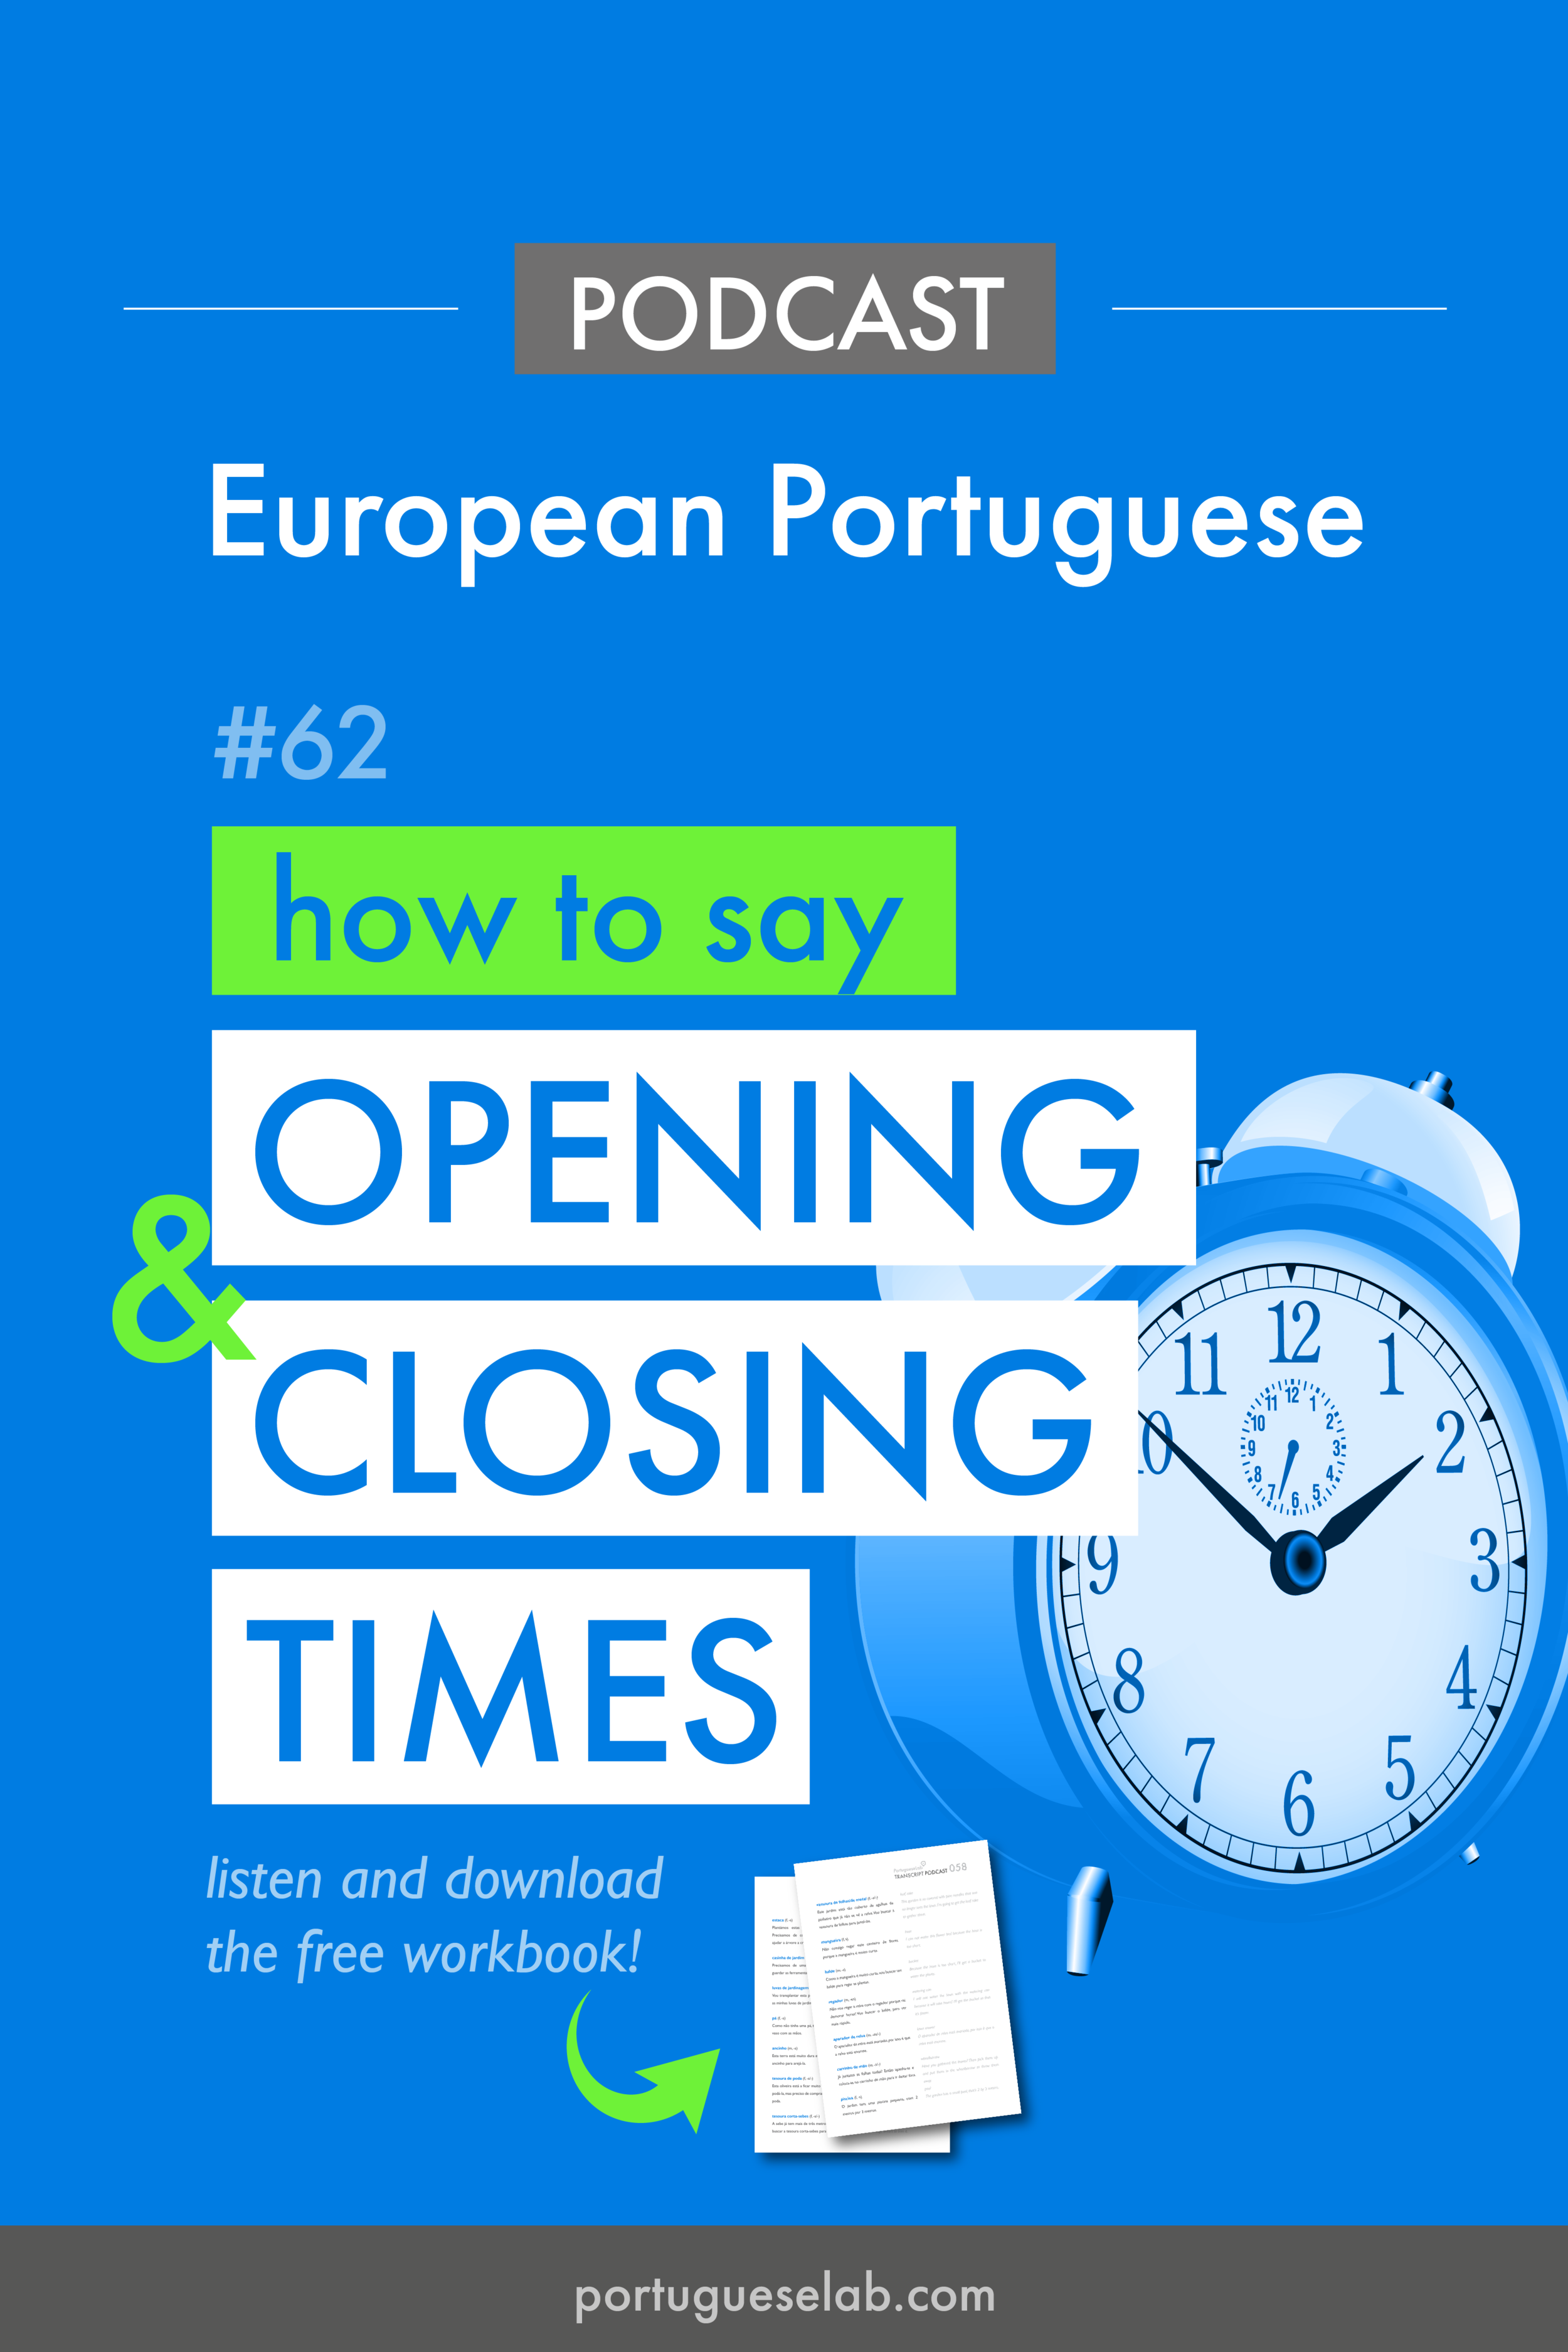 Portuguese Lab Podcast - European Portuguese - 62 - How to say opening closing times.png